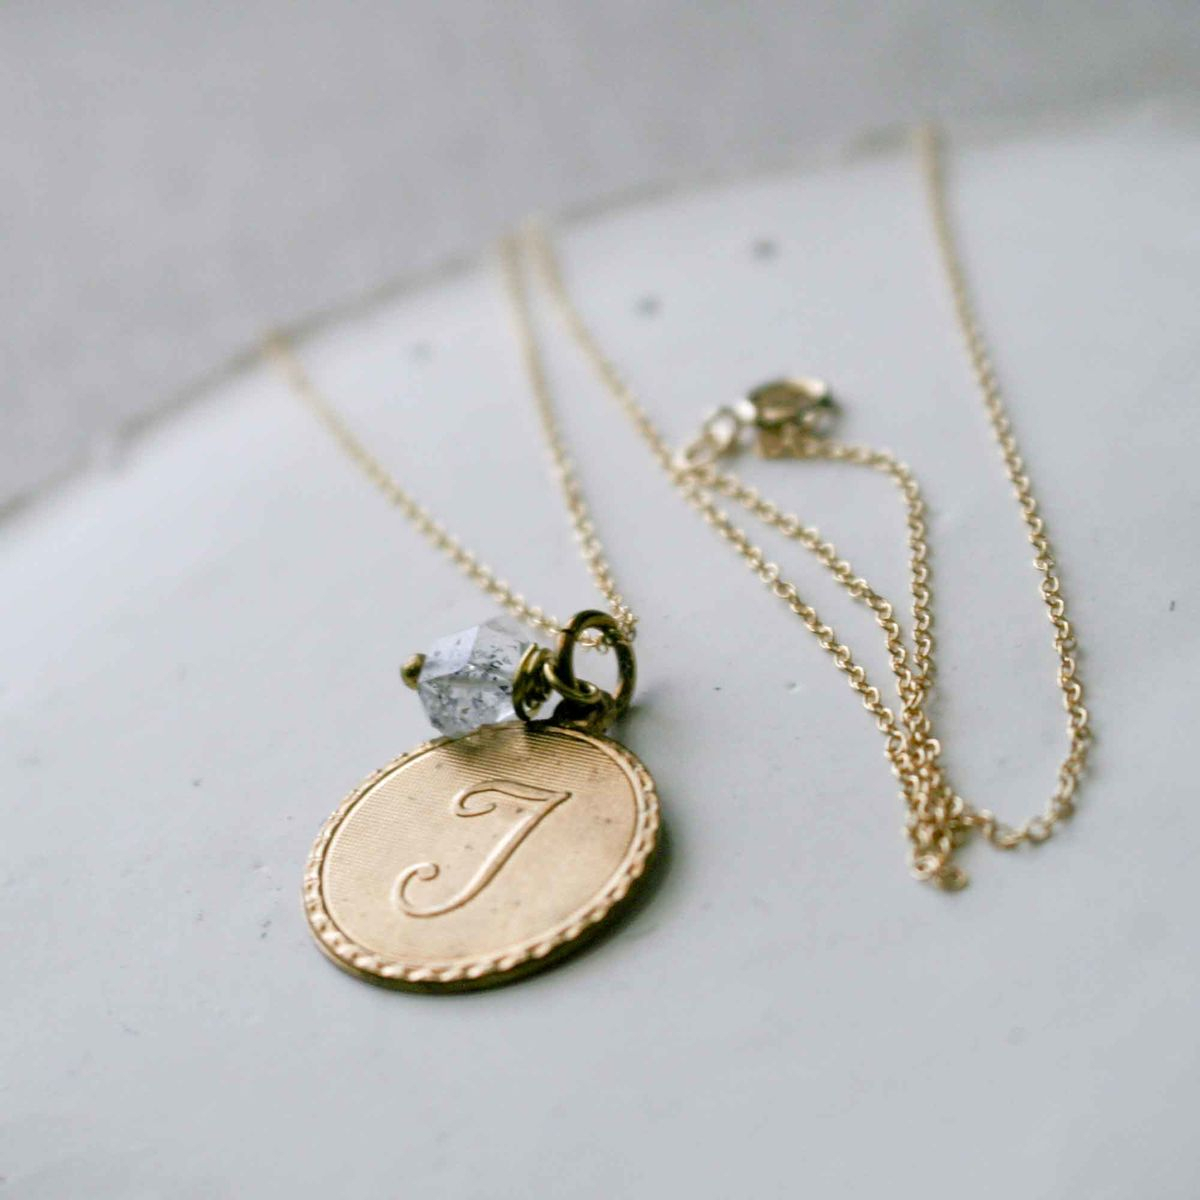 Uppercase Cursive Initial Monogram Letter Round Disc Charm Necklace With Regard To 2019 Letter P Alphabet Locket Element Necklaces (Gallery 19 of 26)